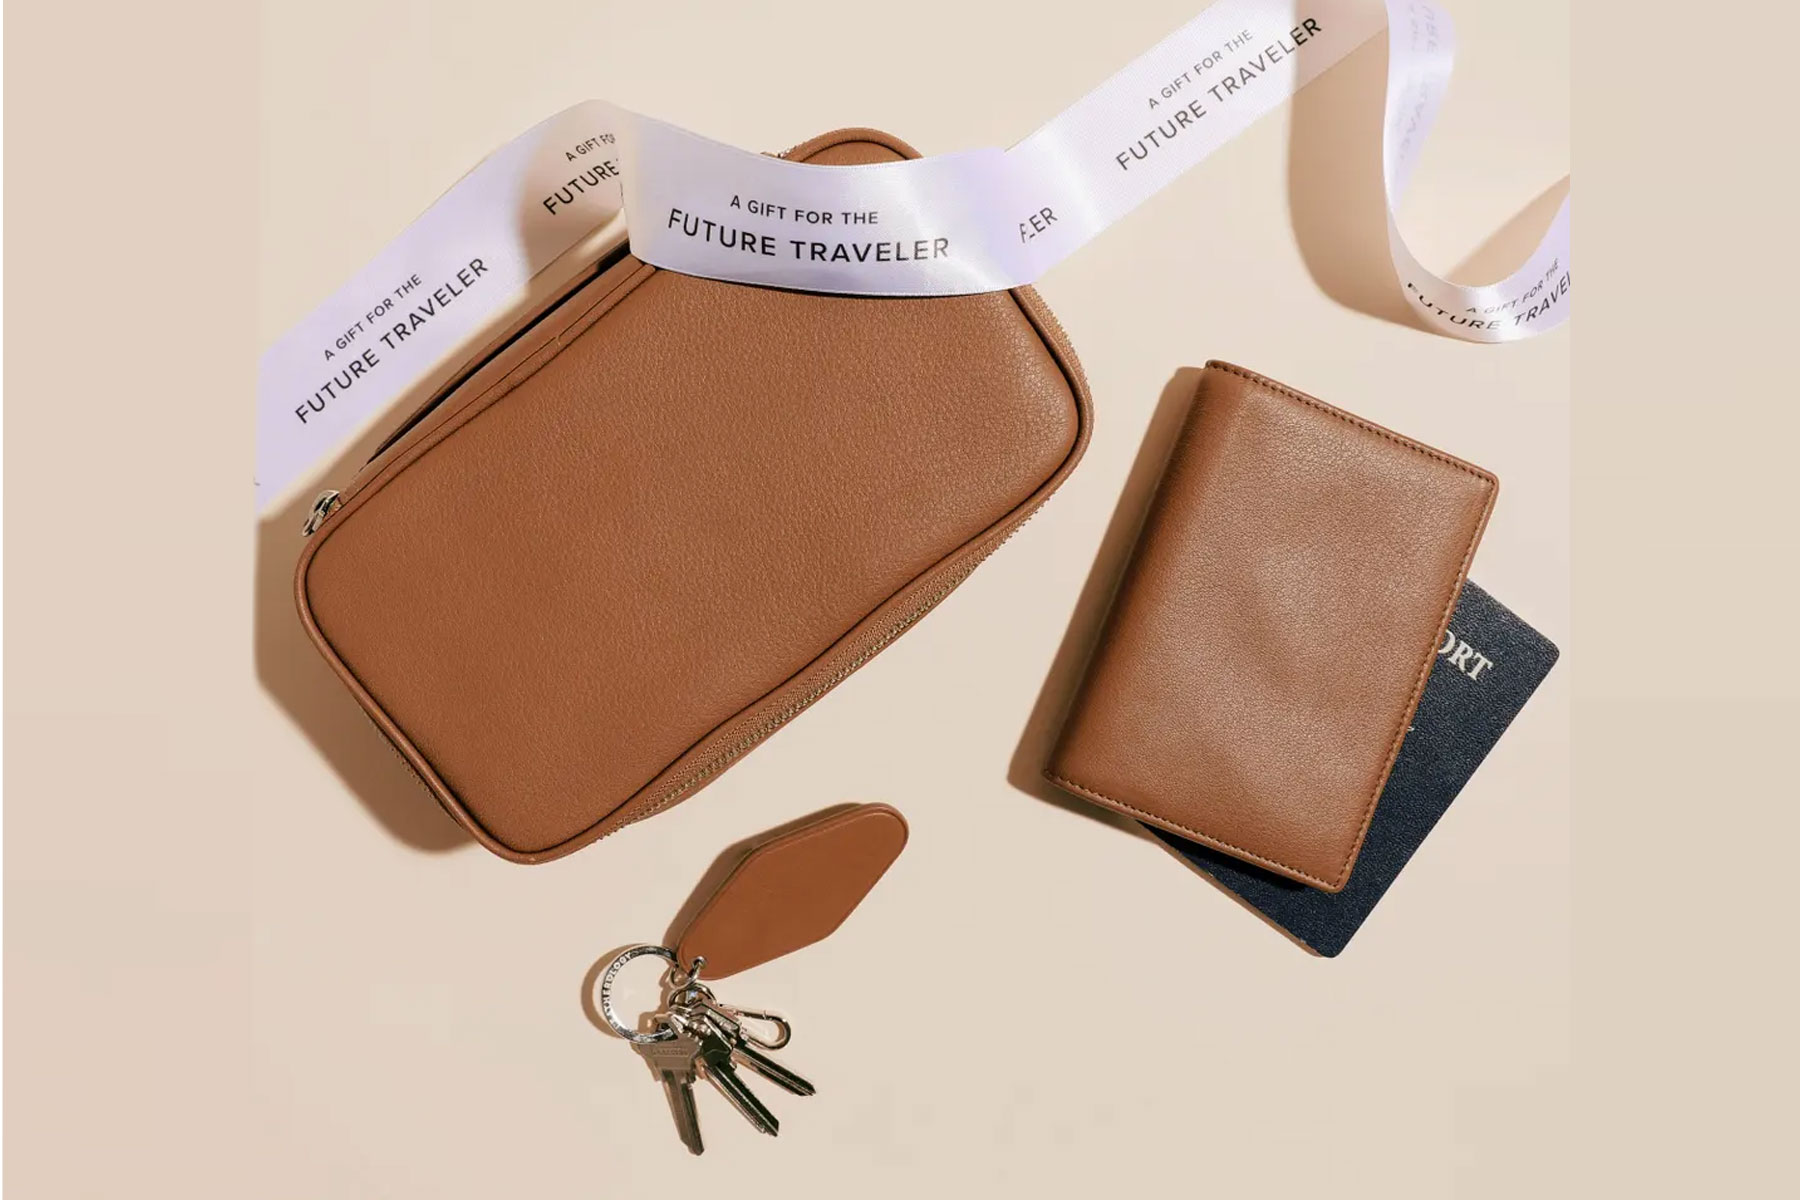 Leather travel cases and passport